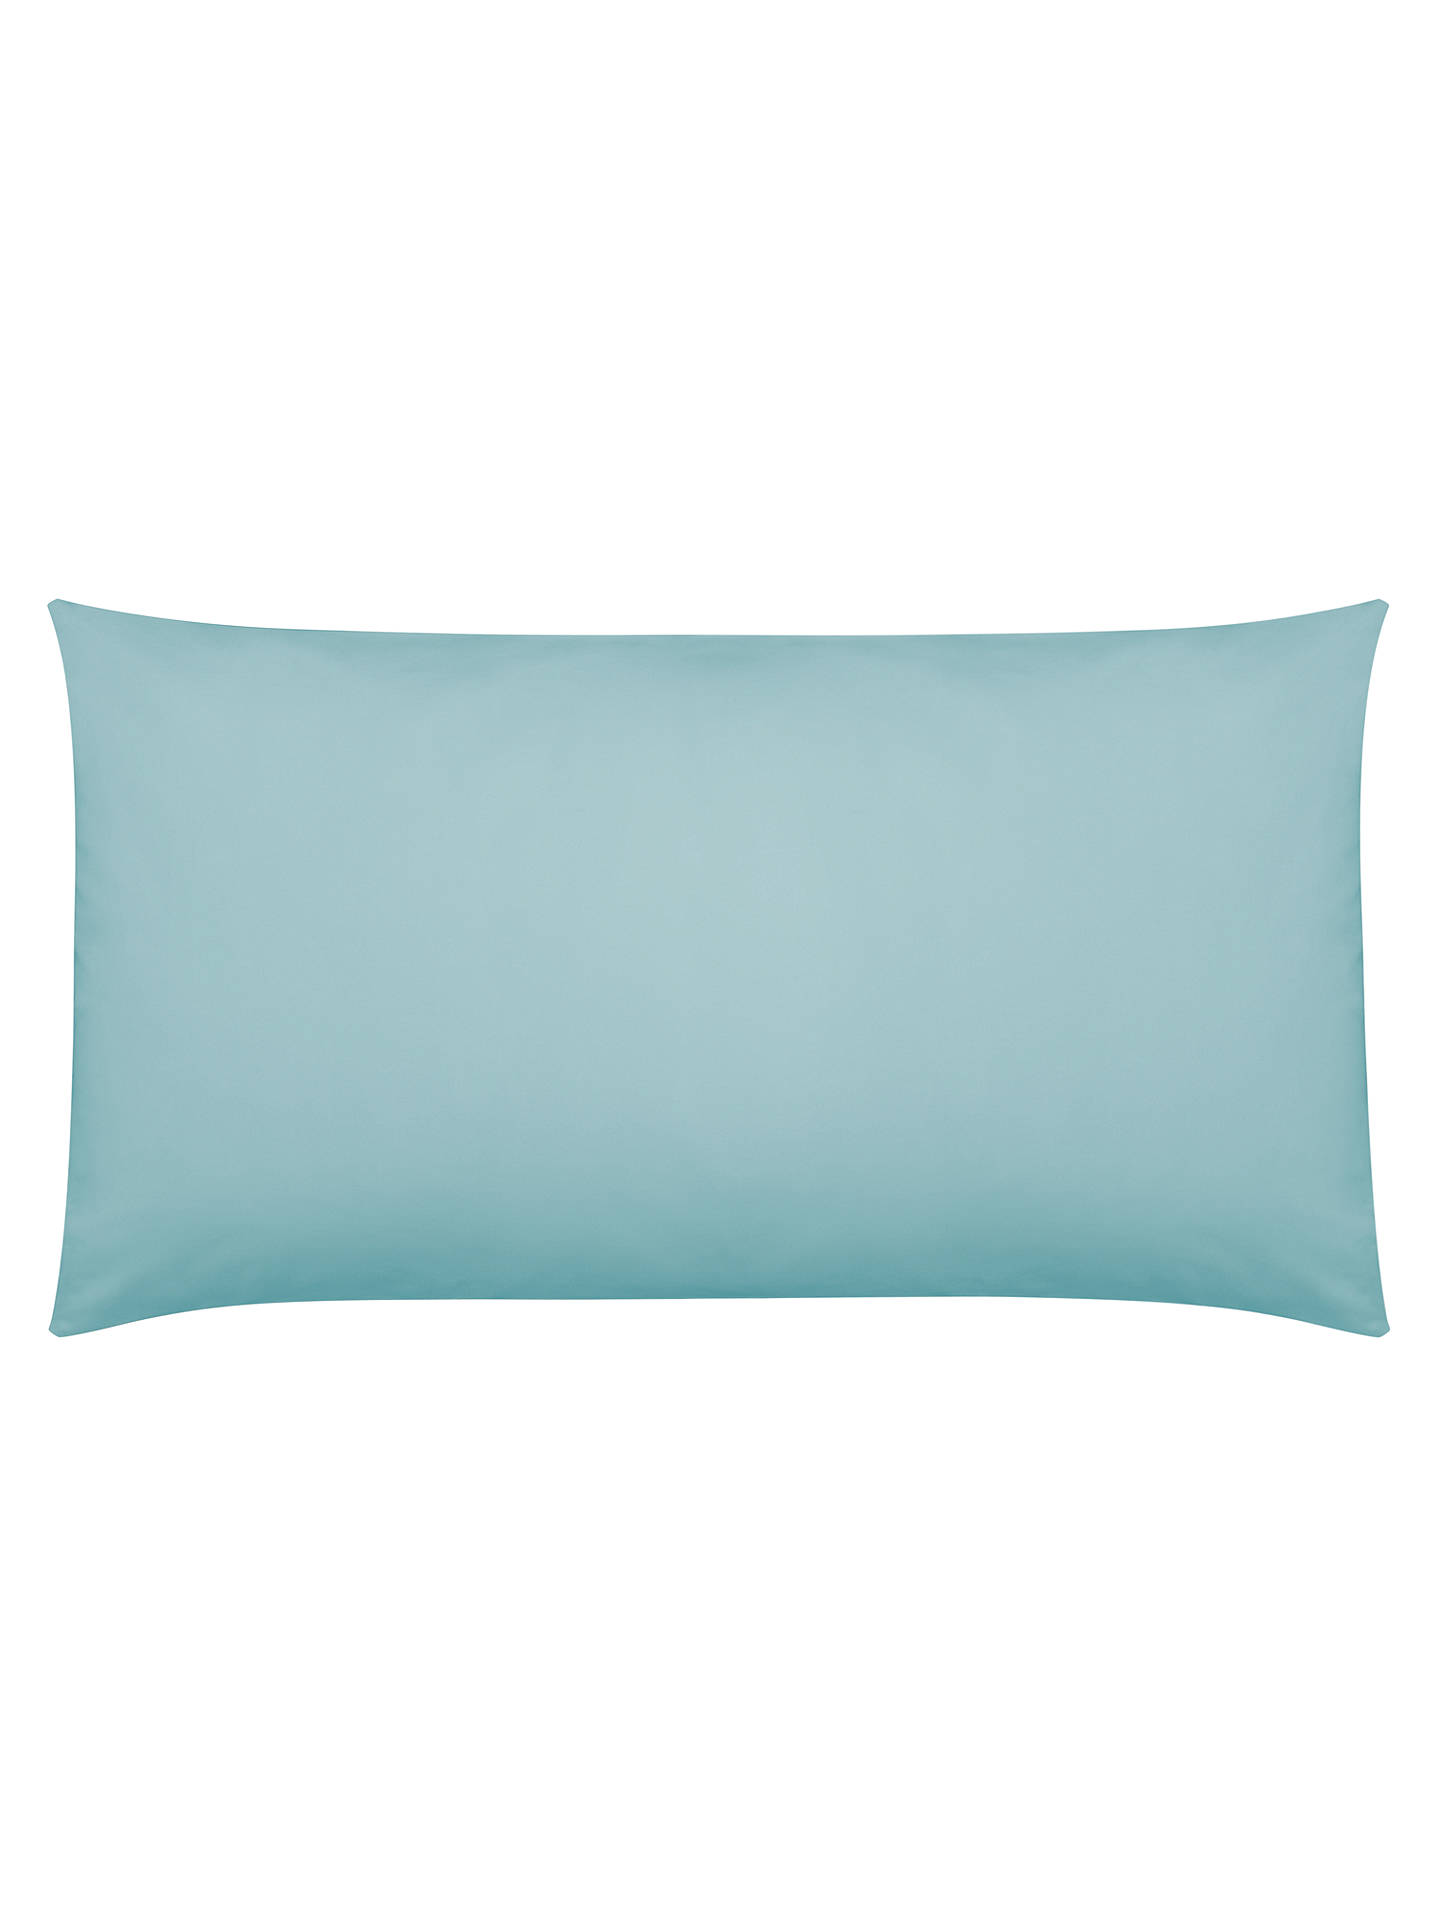 Buy John Lewis & Partners Crisp and Fresh 200 Thread Count Egyptian Cotton Square Oxford Pillowcase, Duck Egg Online at johnlewis.com